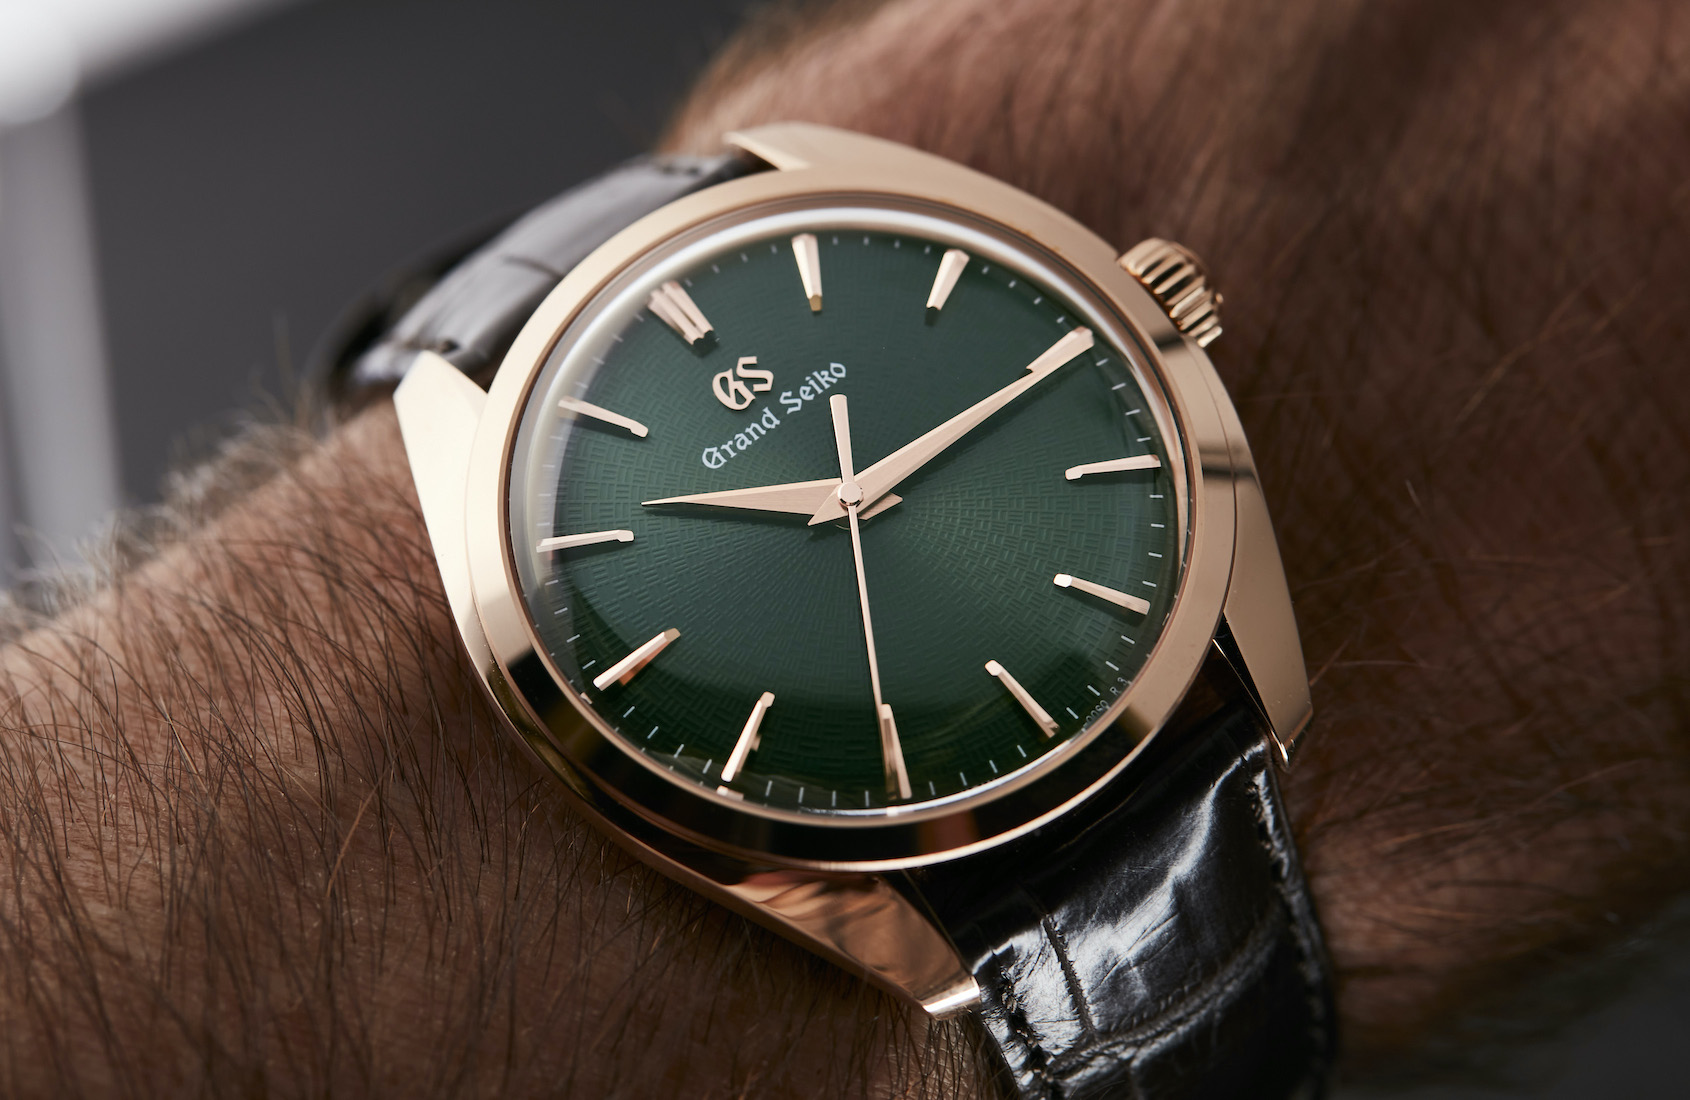 VIDEO: The Grand Seiko SBGW264 reinforces the brand's bid to become the king of dials